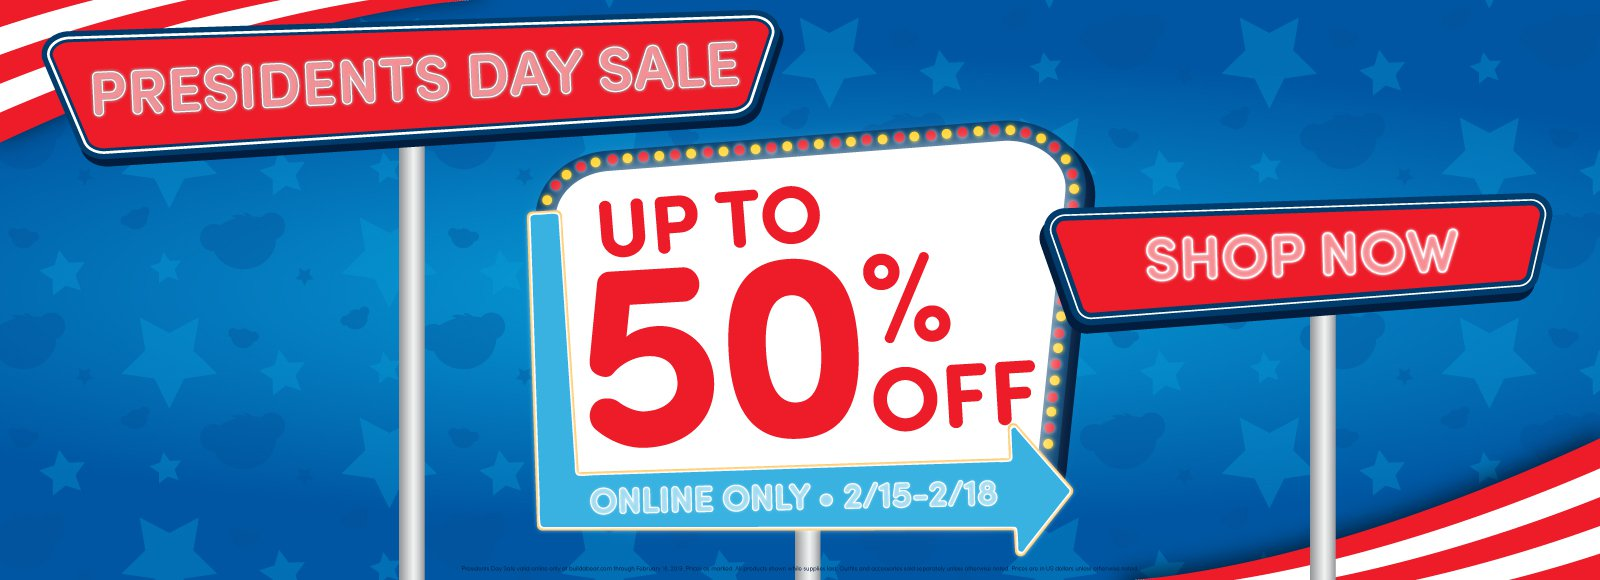 8bd8287fd4fa Now through February 18, Build a Bear has 450 items on sale up to 50% off.